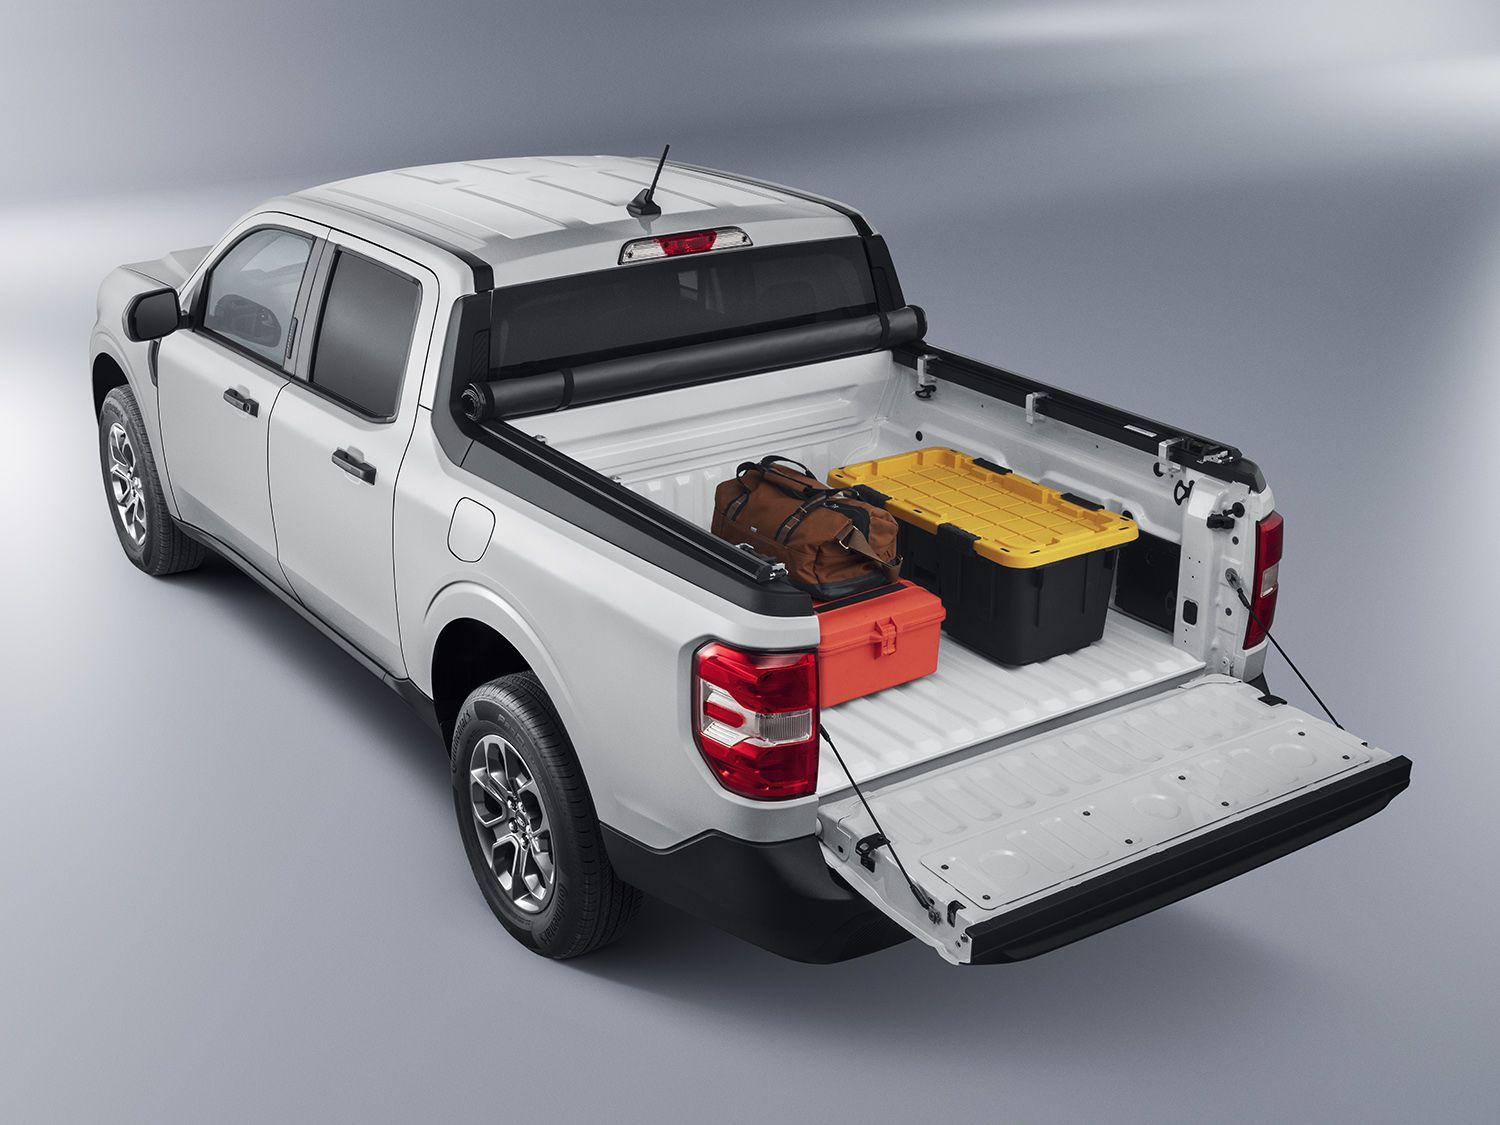 2022 ford maverick Tonneau : Bed Cover - Soft Folding by Advantage, Over The Rails, 4.5 Bed .jpg